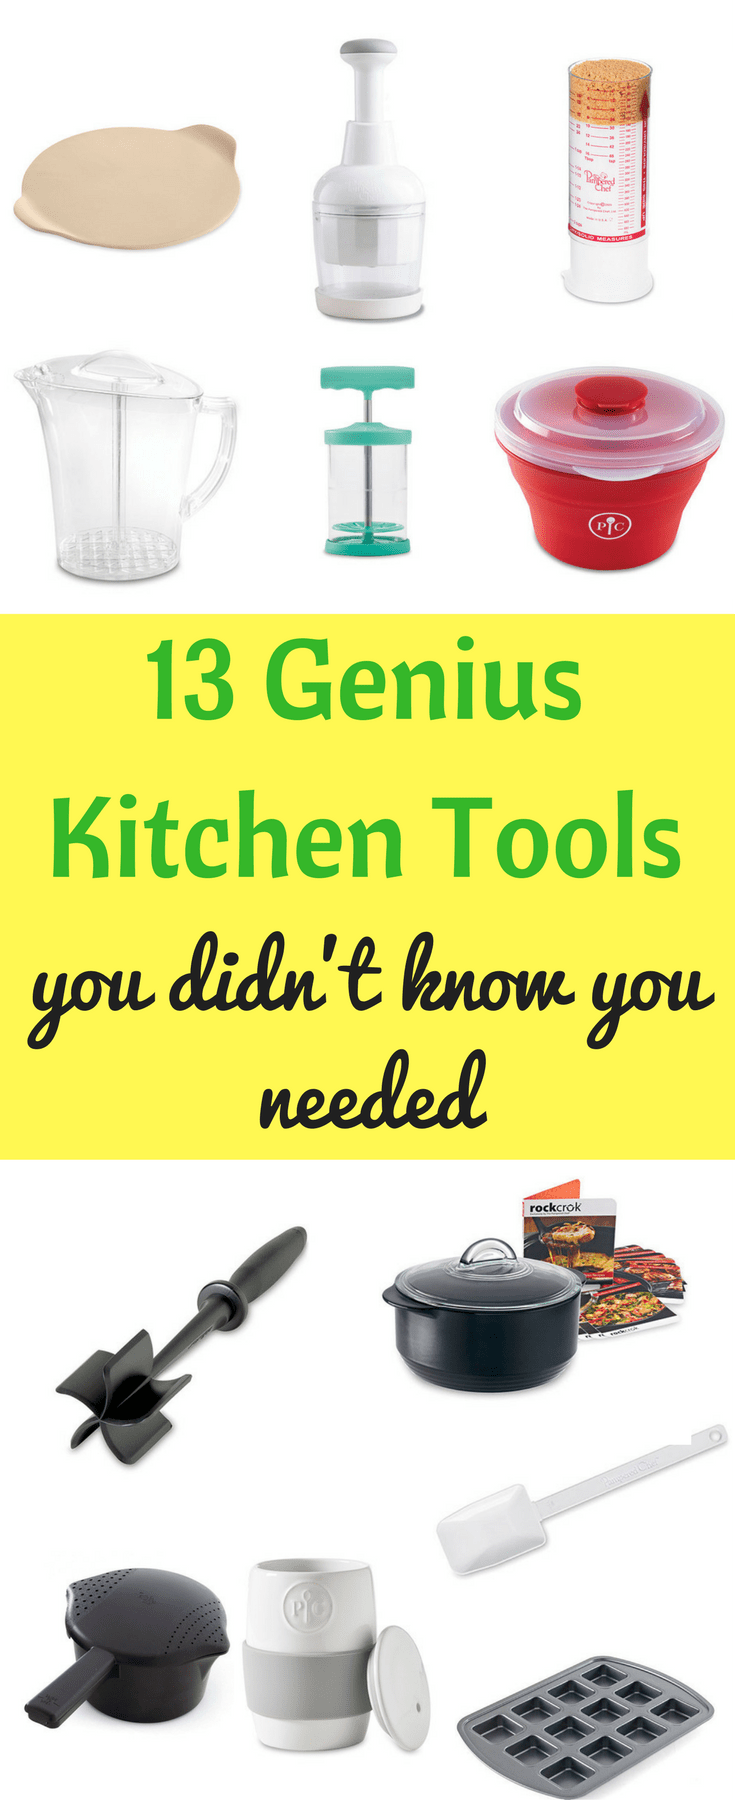 Best Pampered Chef Products / Genius Kitchen Tools / Helpful Kitchen Tools / Kitchen/ Cooking / Beginning Cook / Cooking Utensils / Mother's Day Gifts / Gift Ideas / College Gift Ideas via @clarkscondensed